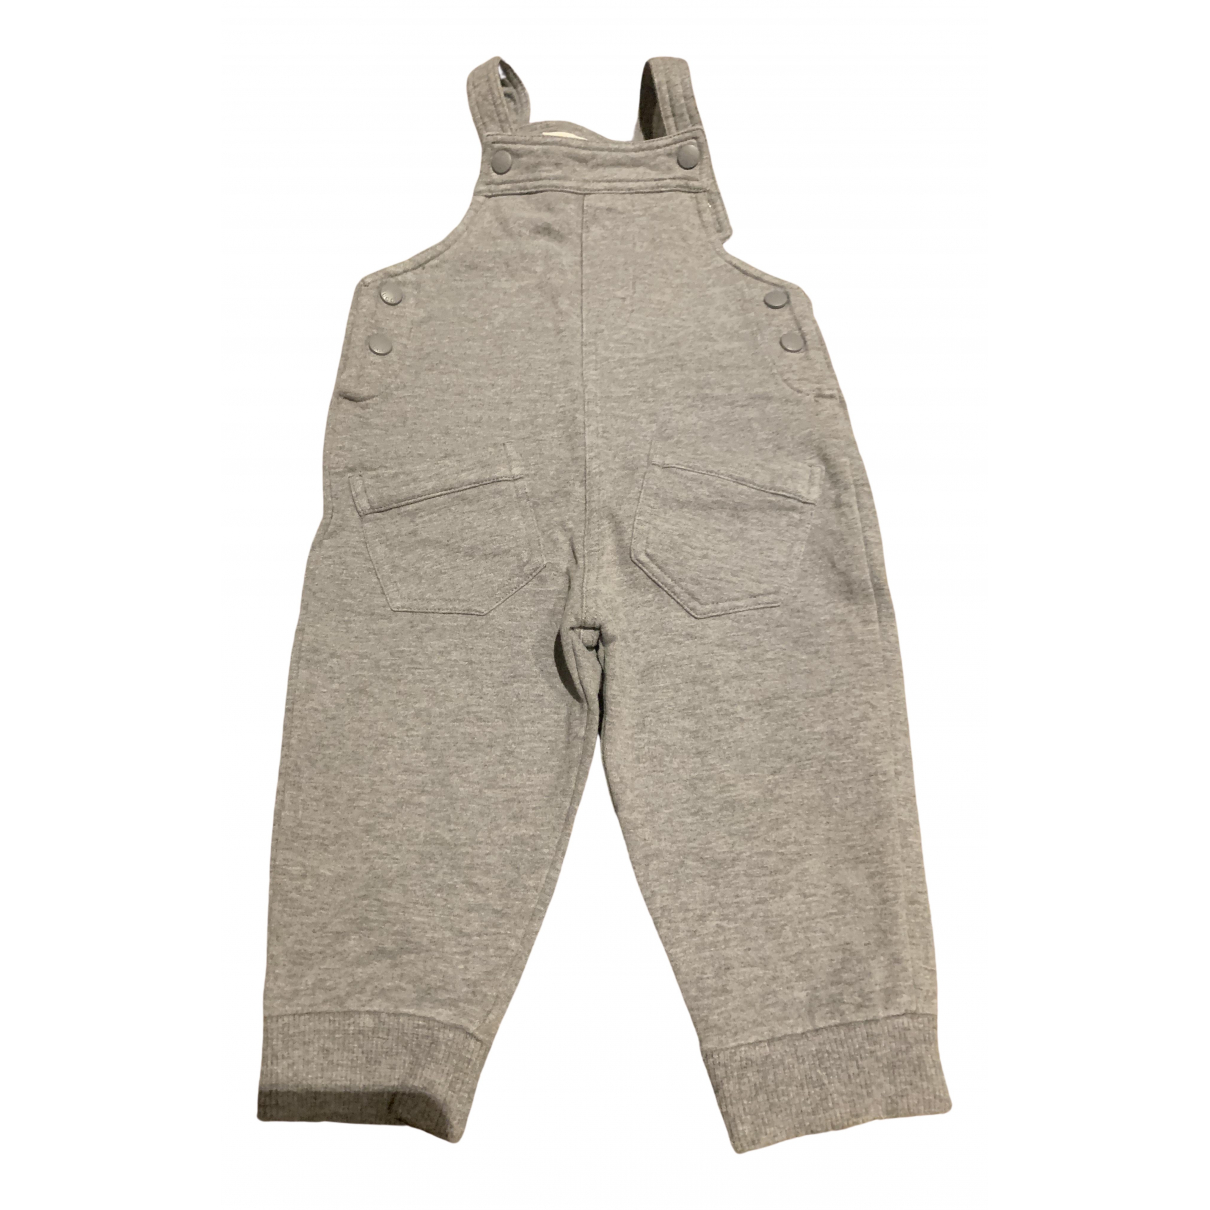 Gucci \N Grey Cotton Trousers for Kids 9 months - until 28 inches UK